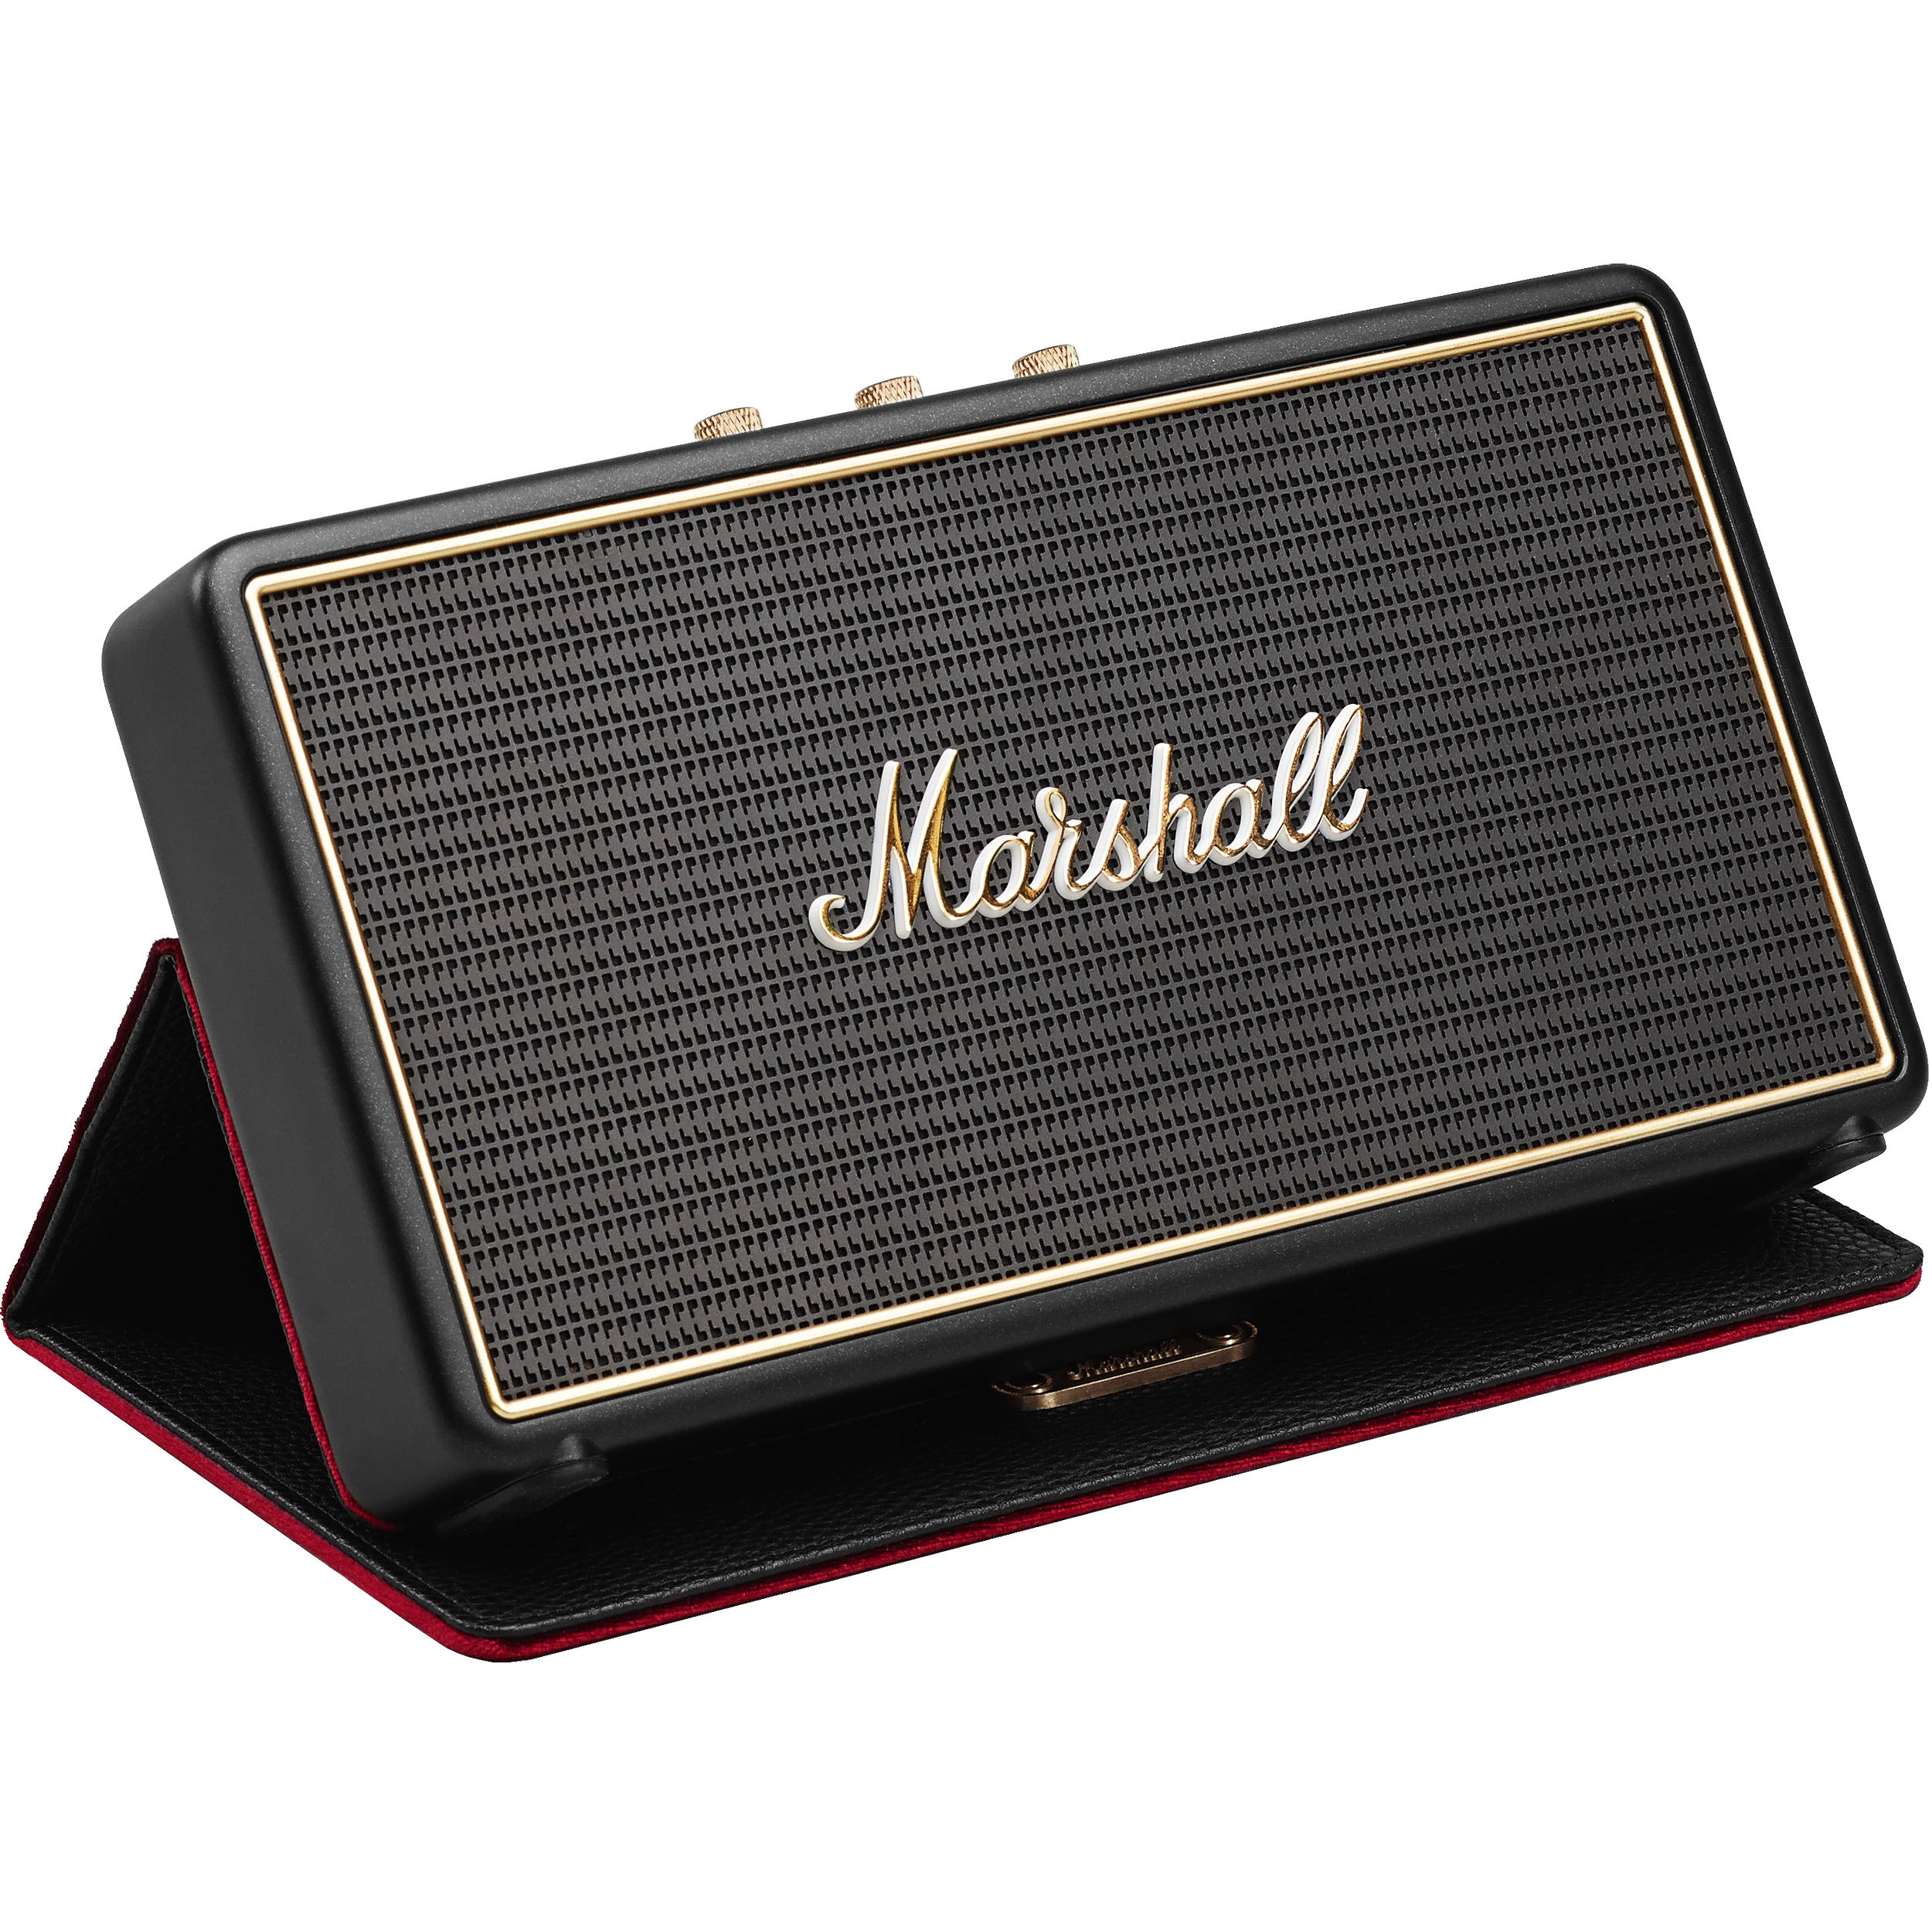 marshall audio stockwell portable bluetooth speaker. Black Bedroom Furniture Sets. Home Design Ideas